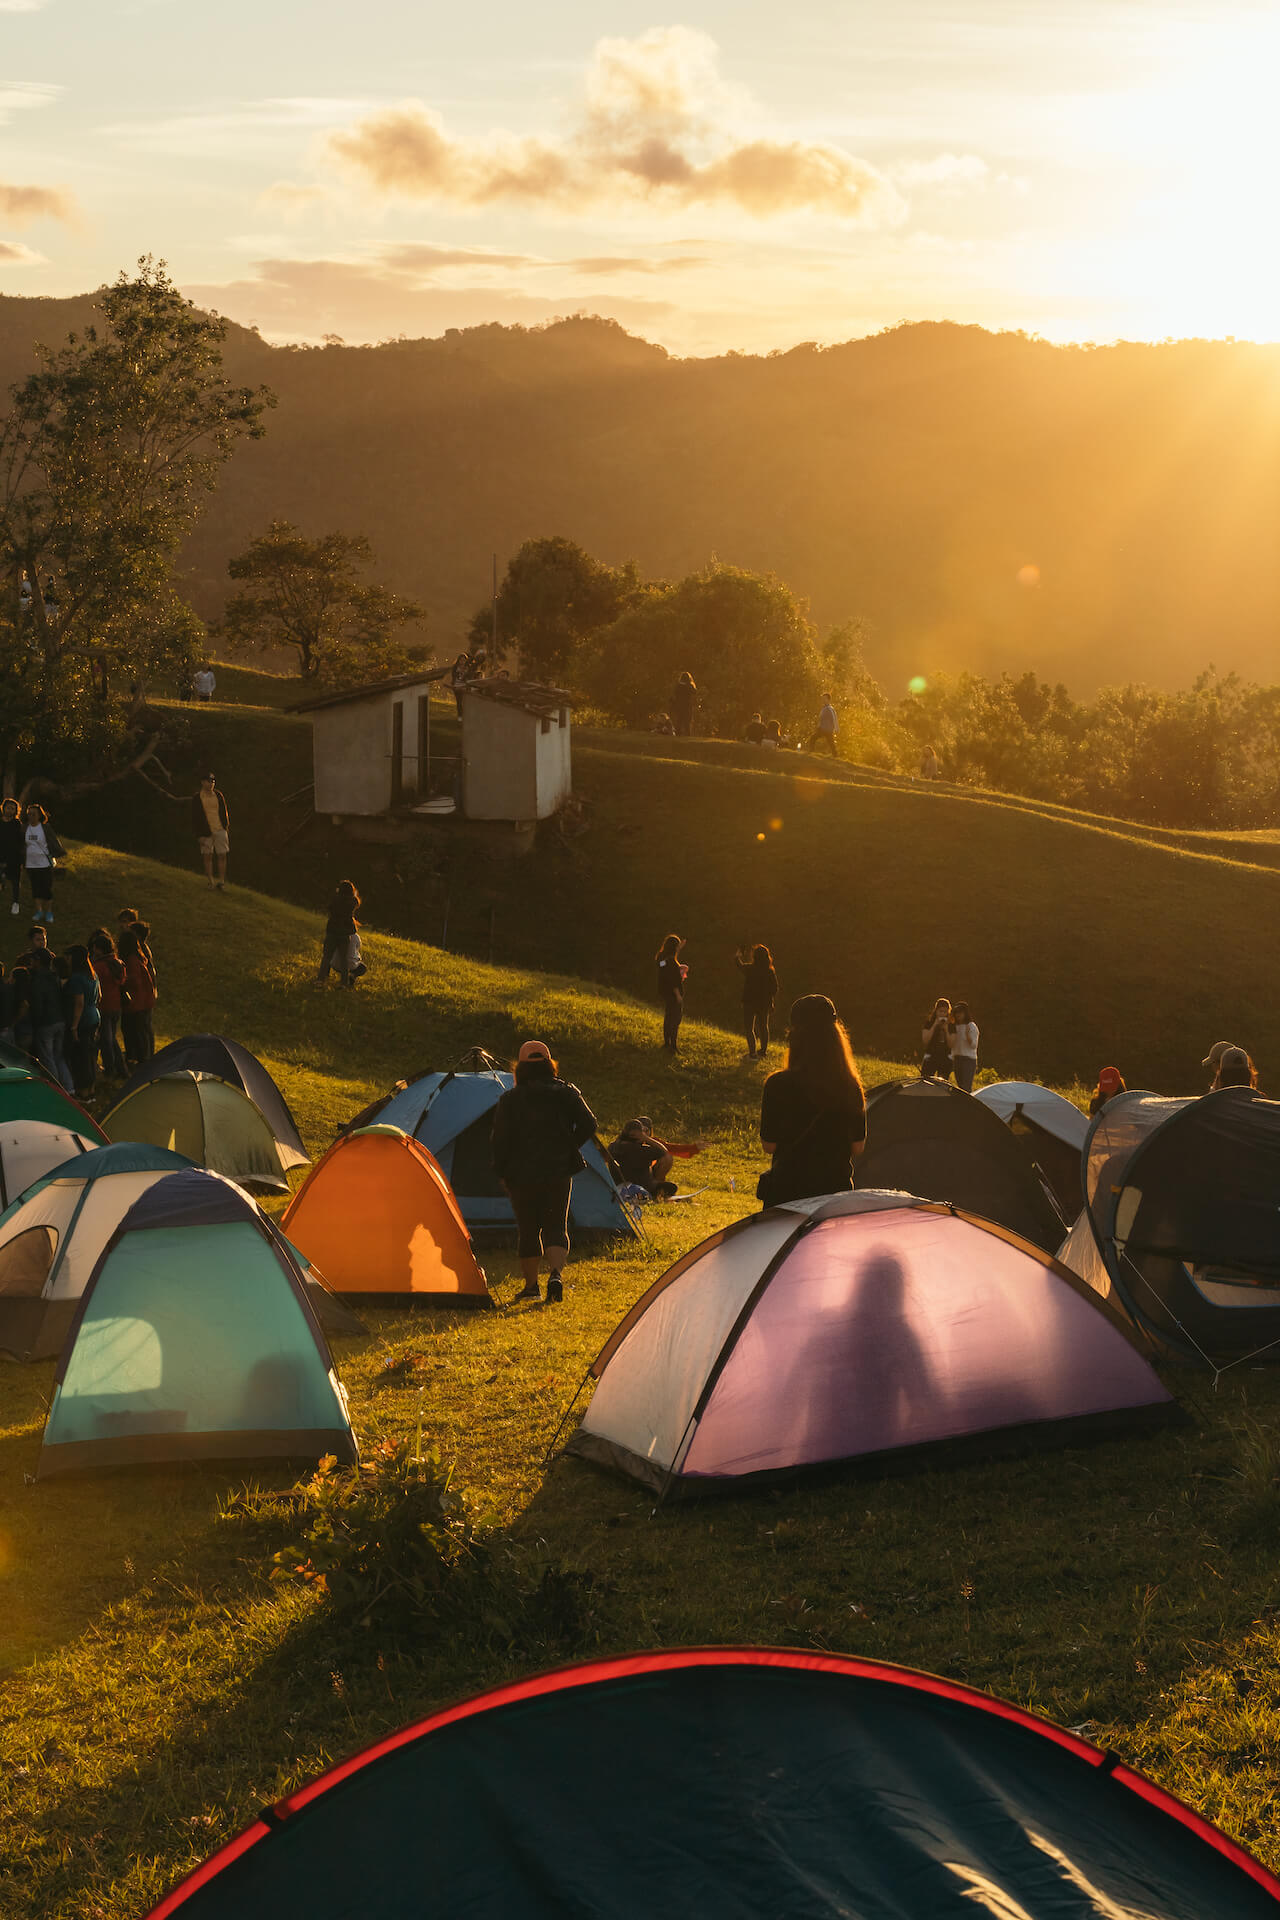 Tents sprawled out around the camping grounds